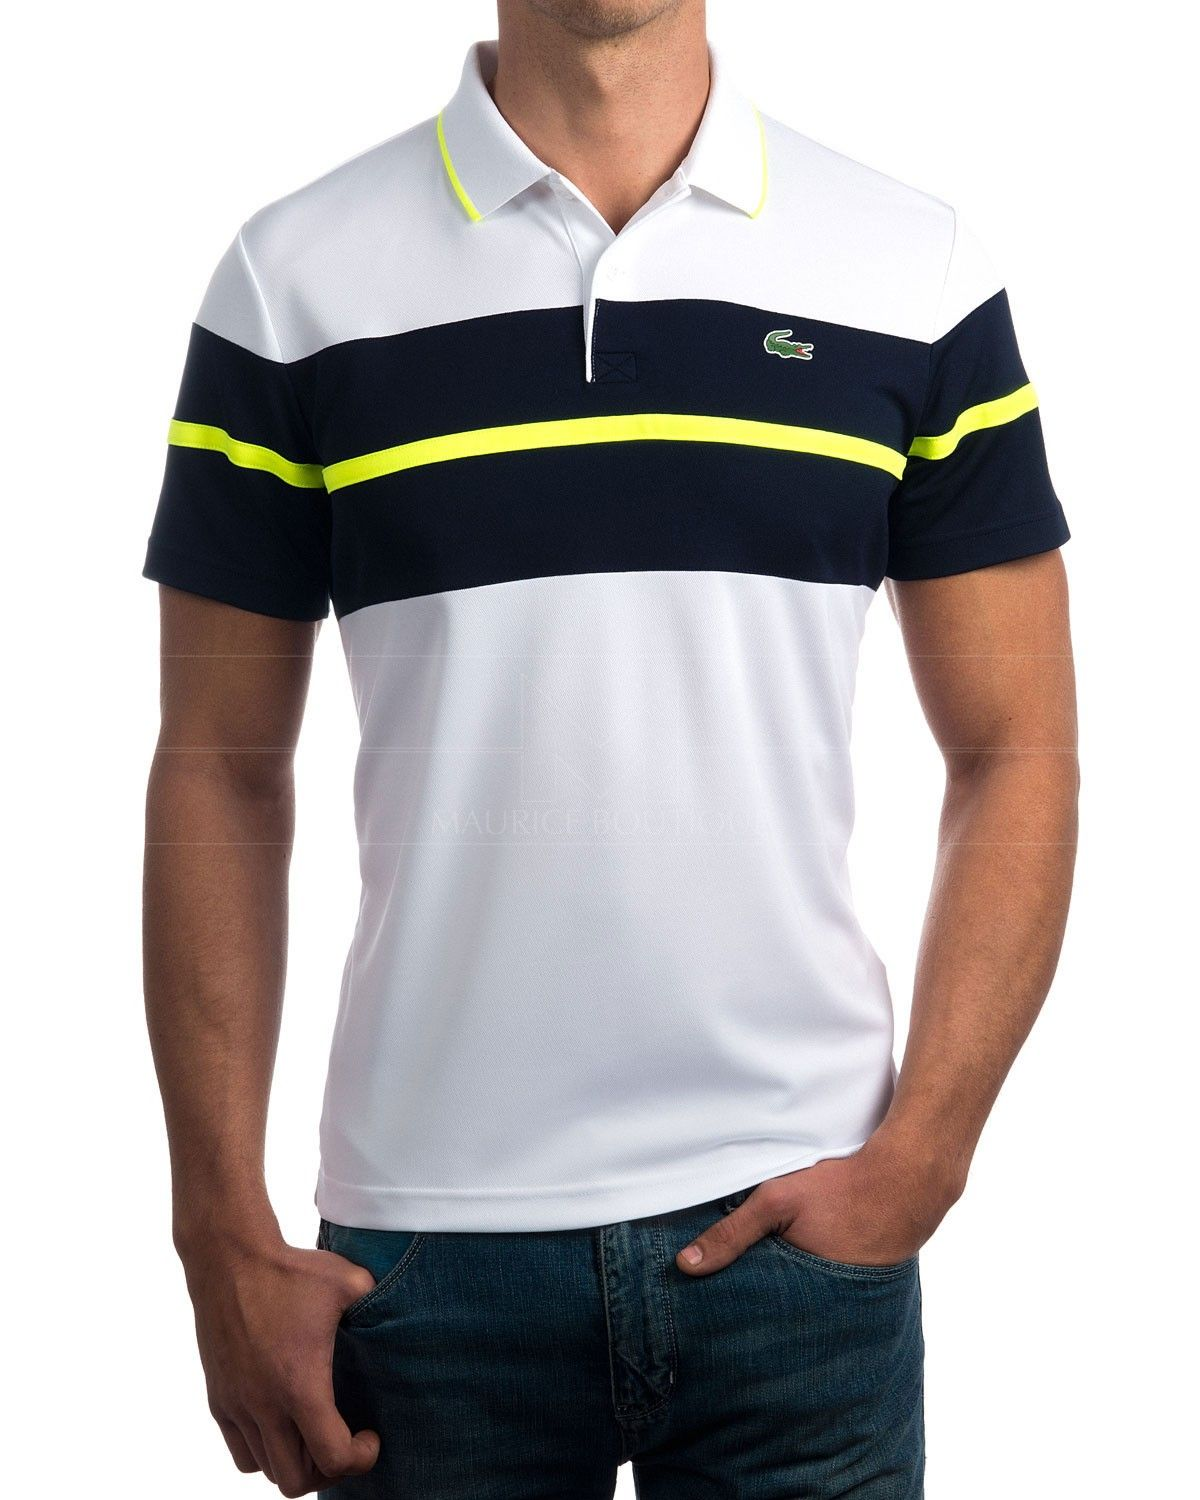 Lacoste T Shirts For Men